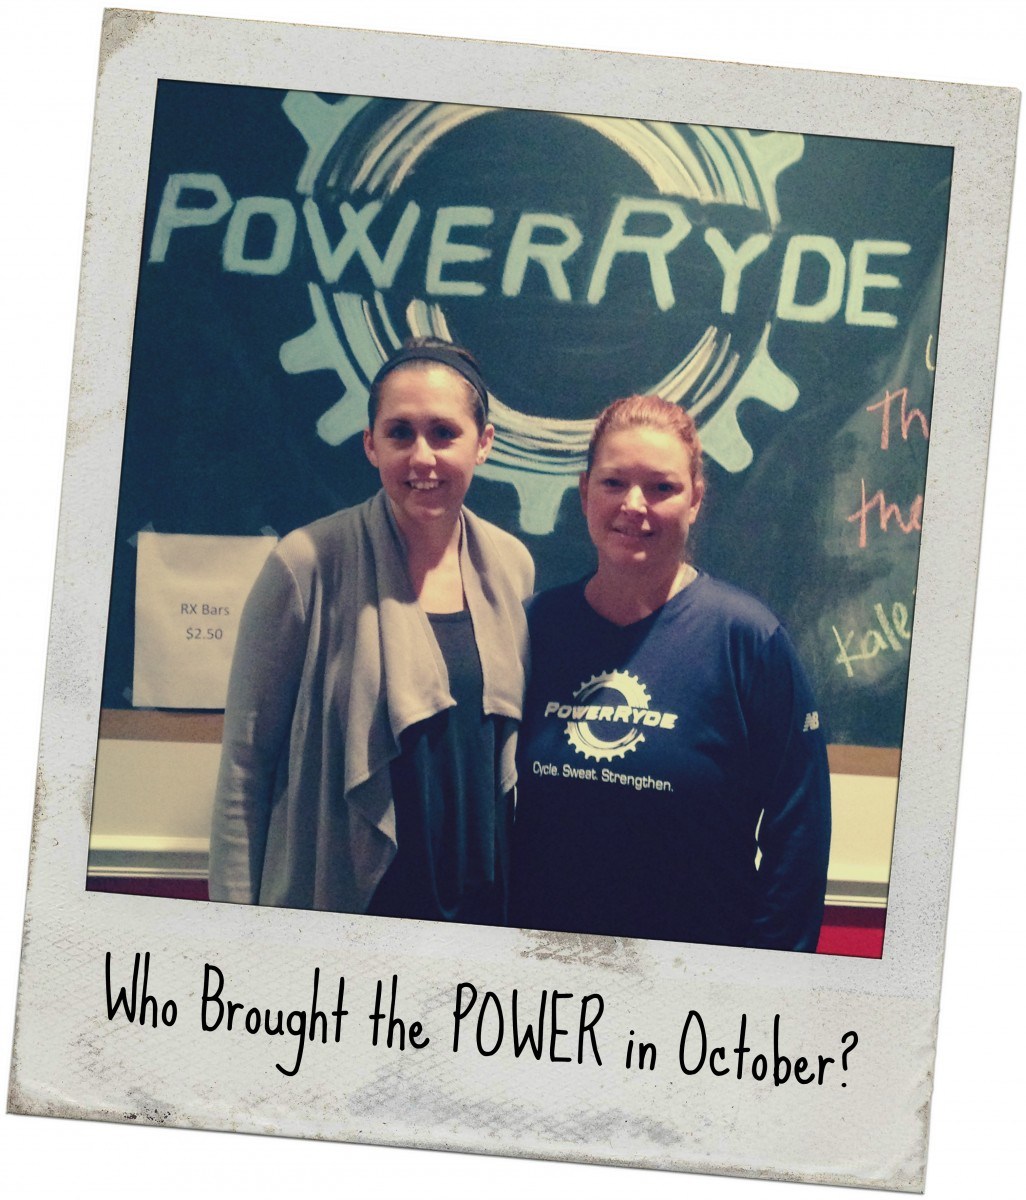 Who Brought the POWER in October?